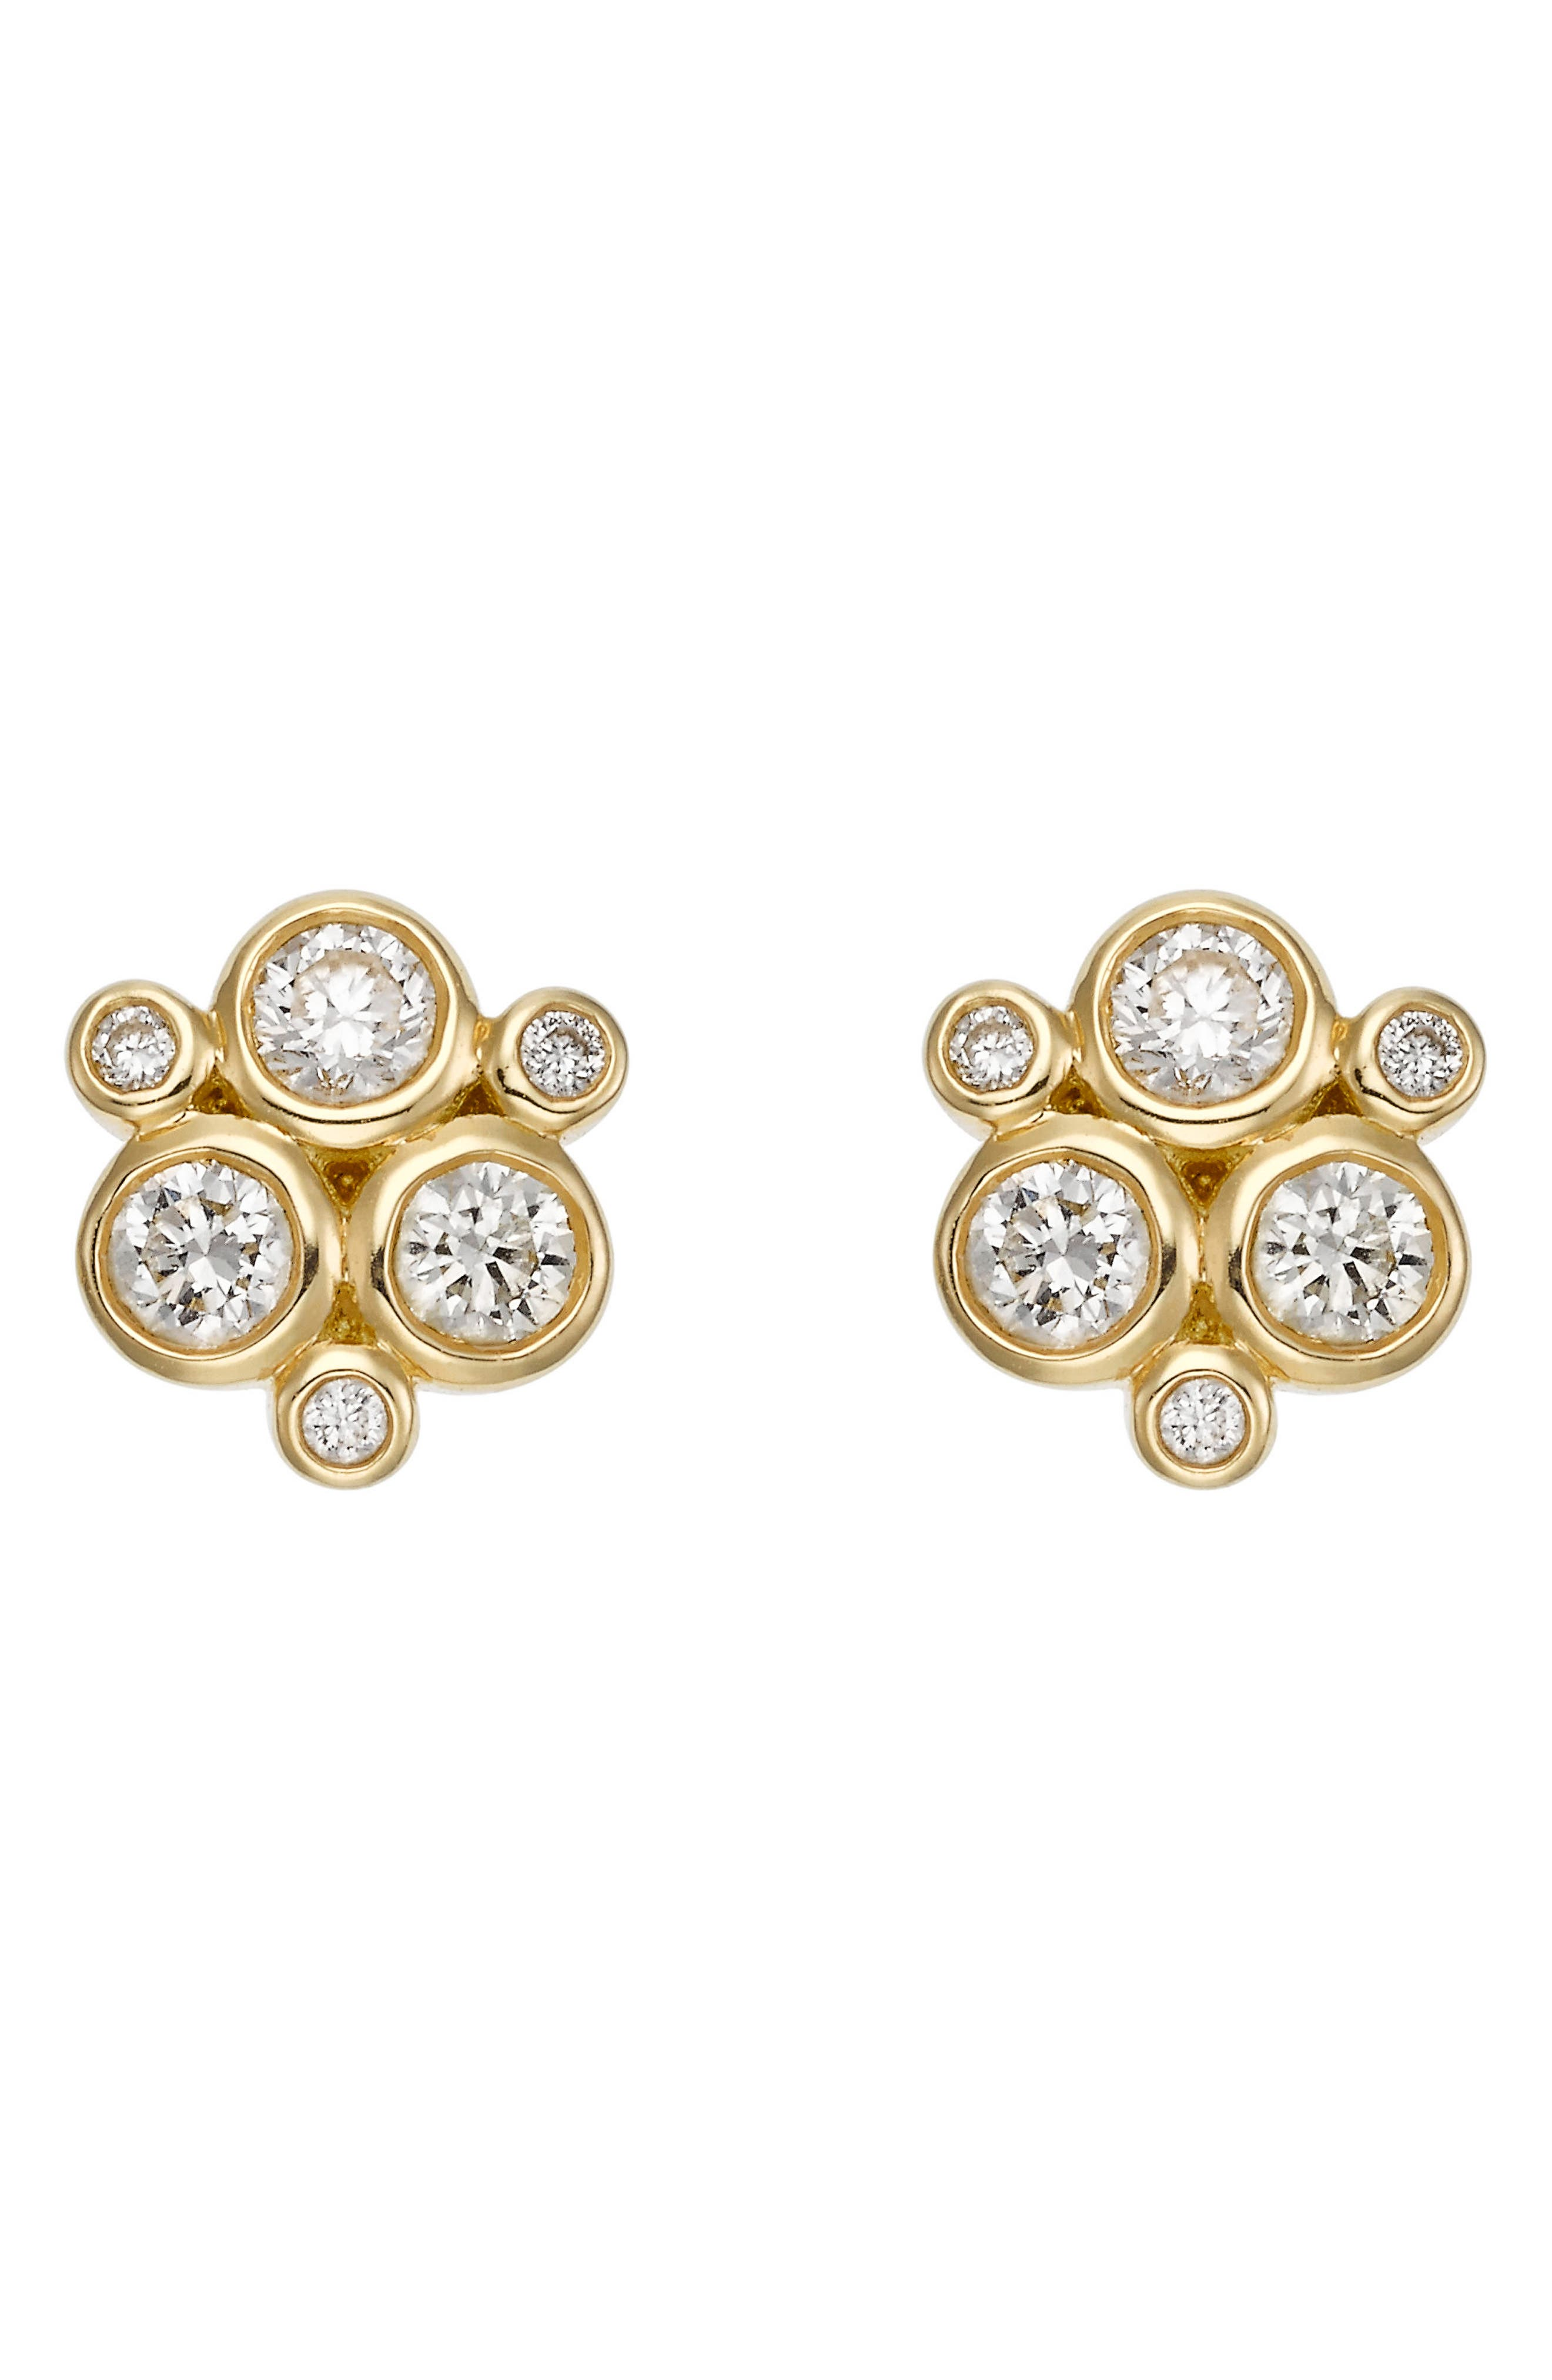 Temple St. Clair Diamond Stud Earrings,                         Main,                         color, YELLOW GOLD